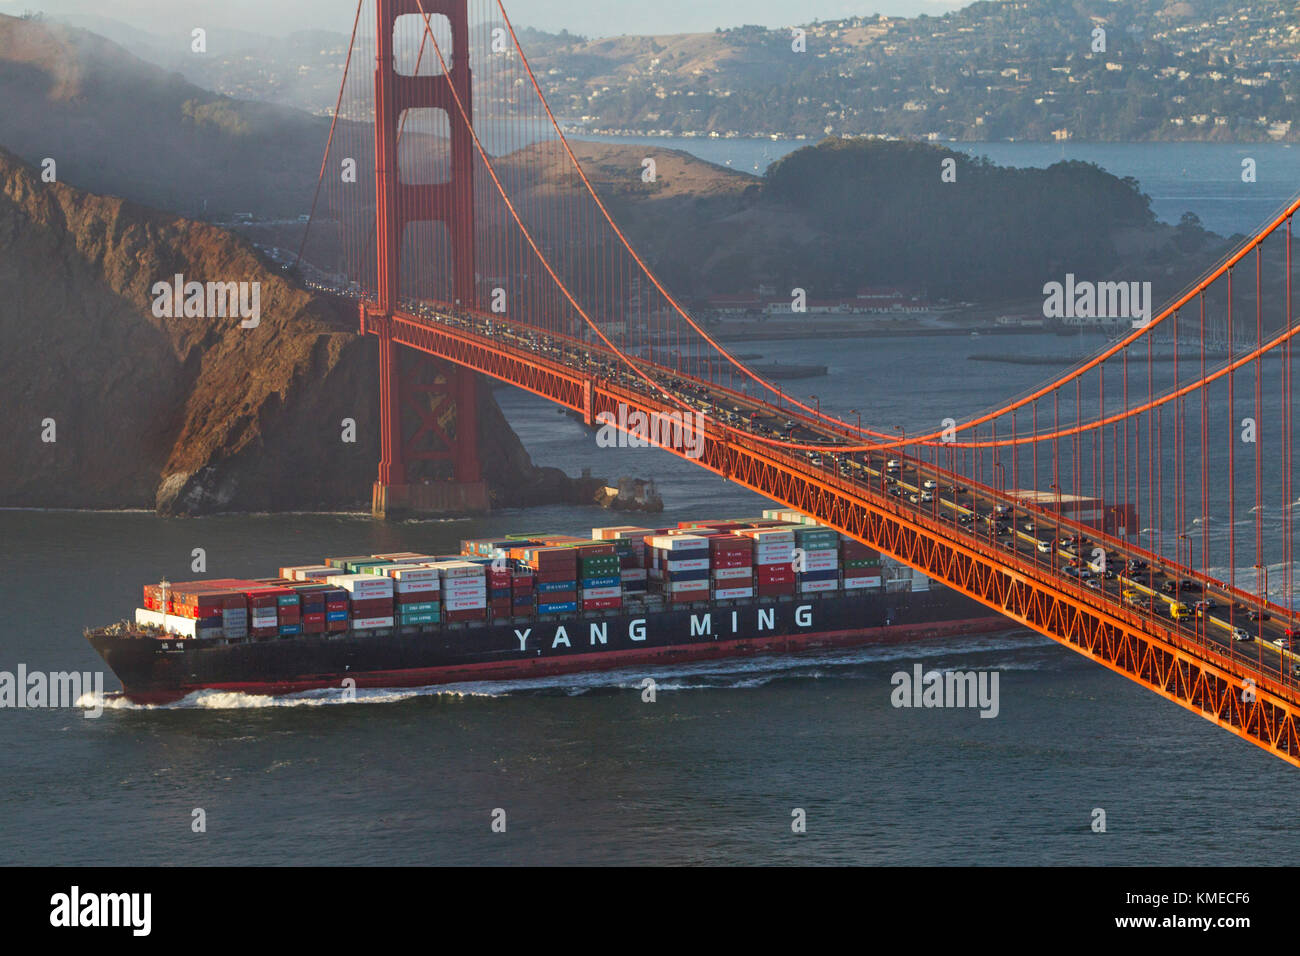 Frachter Segeln unter der Golden Gate Bridge in San Francisco, San Francisco, Kalifornien, USA Stockfoto